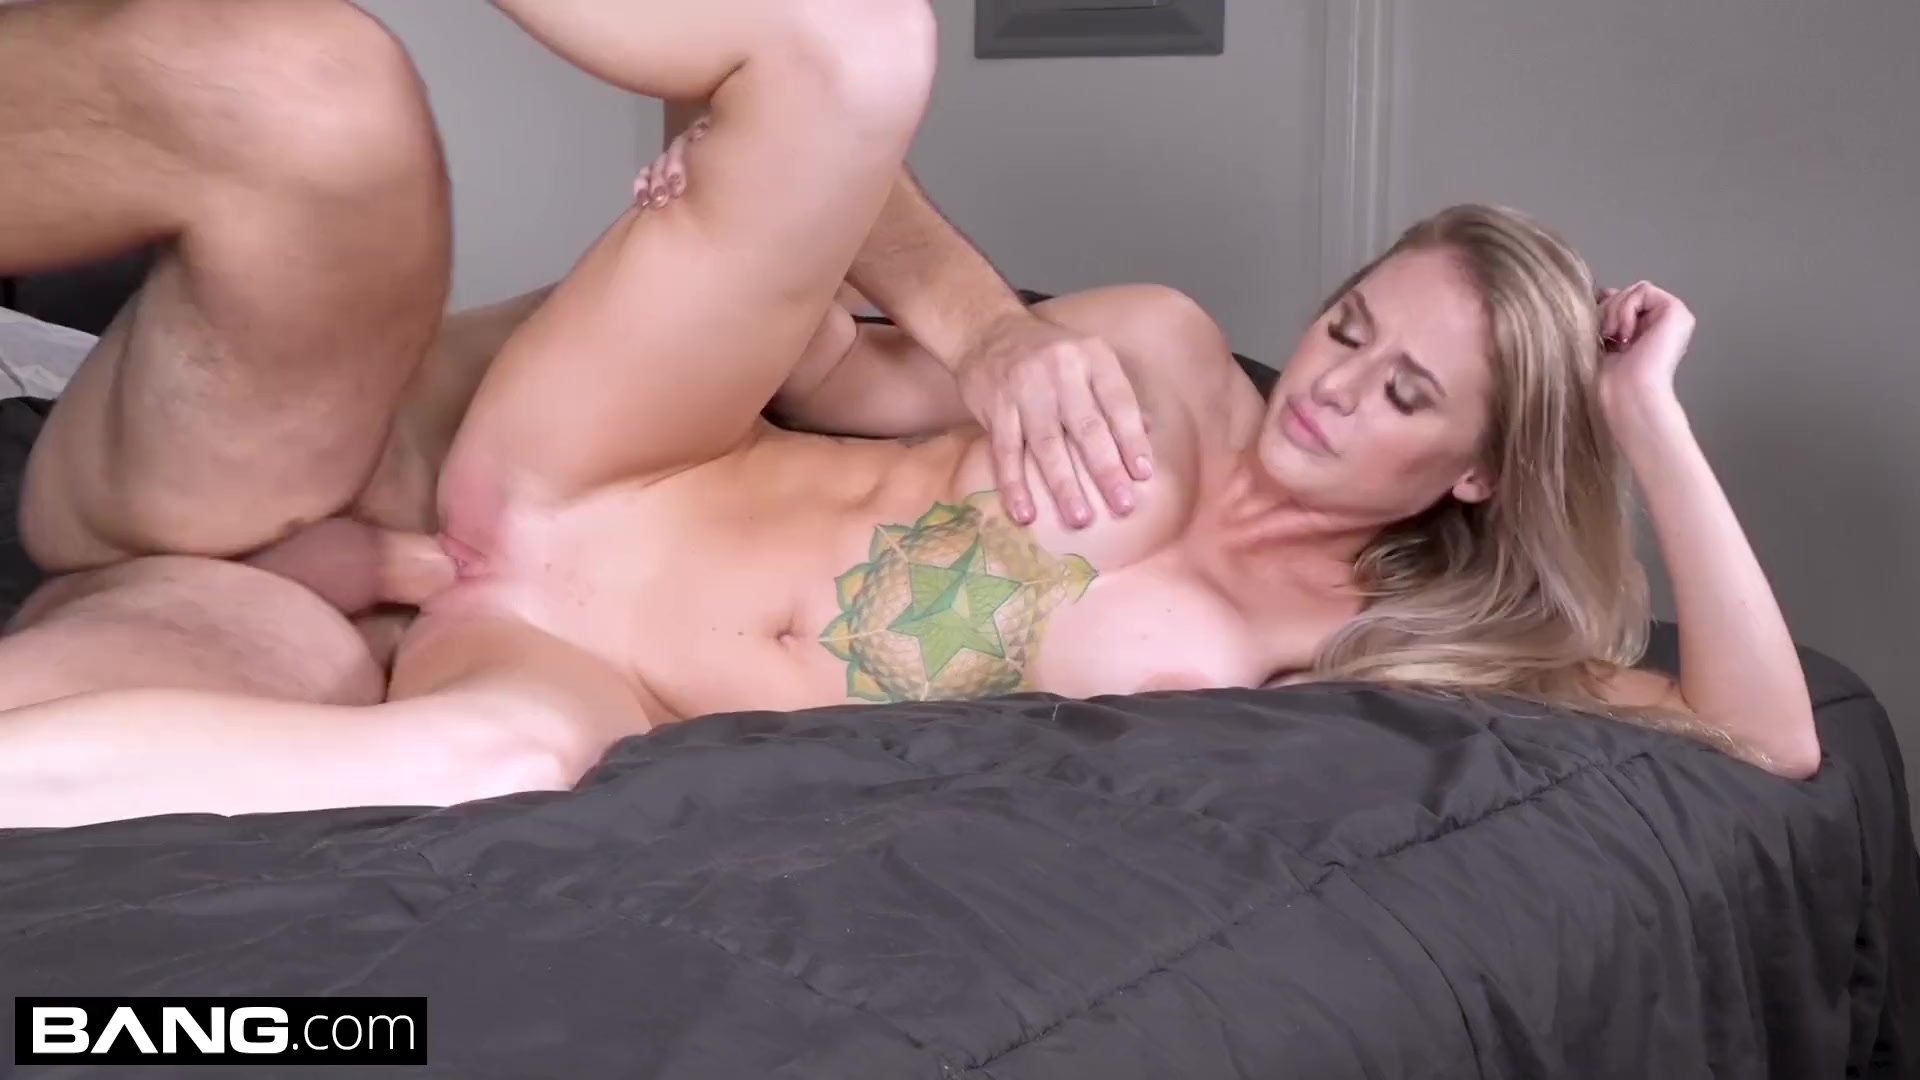 Real MILFs - Blonde MILF with big tits gets fucked pov style